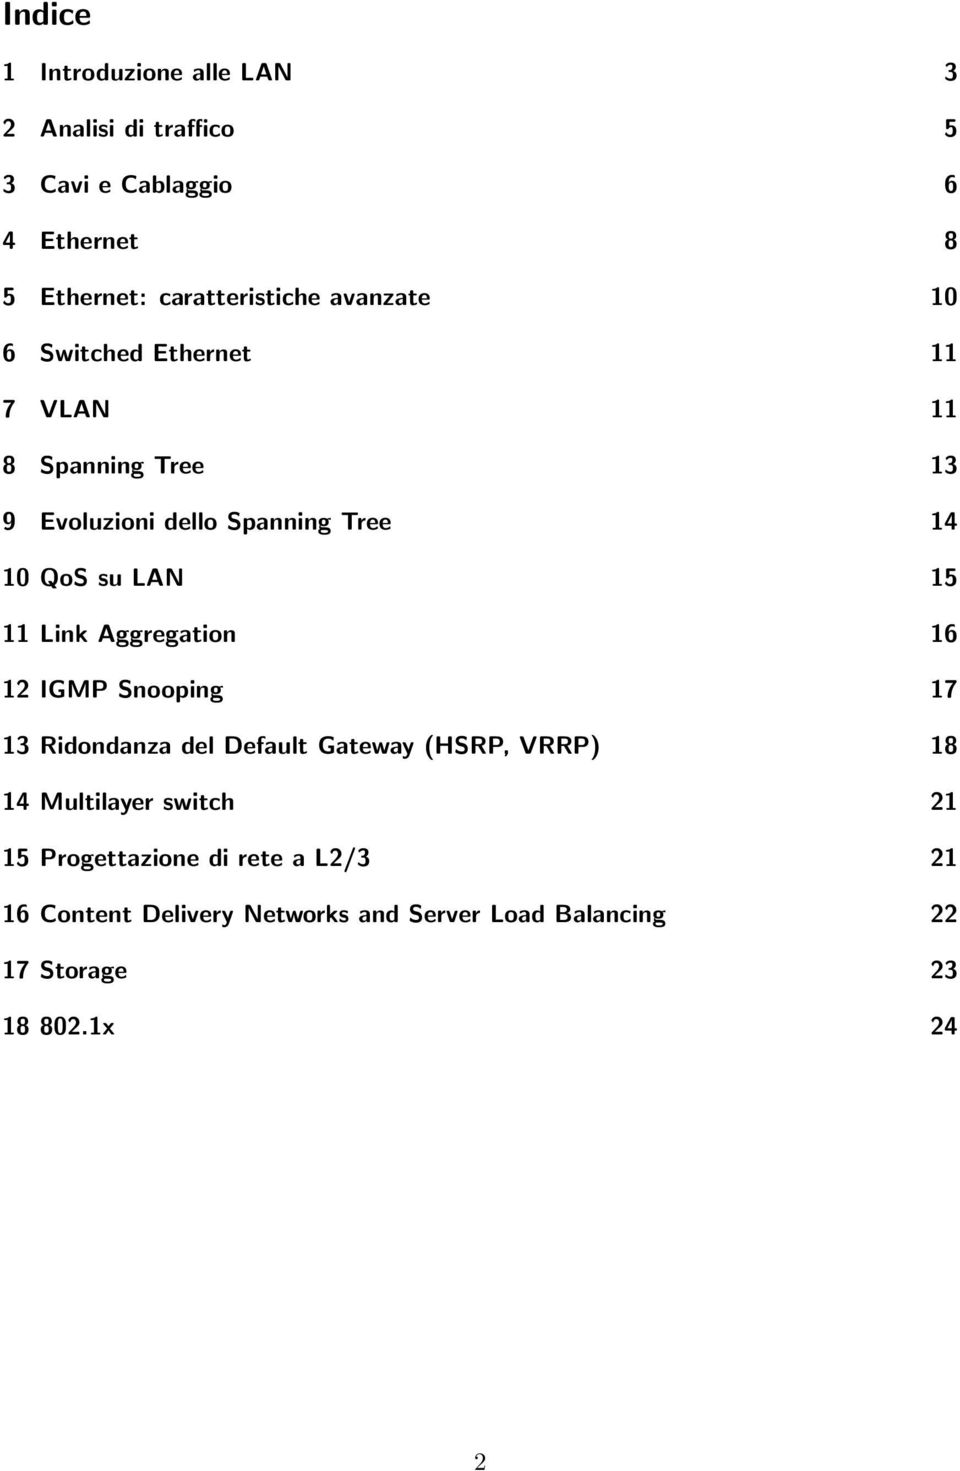 11 Link Aggregation 16 12 IGMP Snooping 17 13 Ridondanza del Default Gateway (HSRP, VRRP) 18 14 Multilayer switch 21